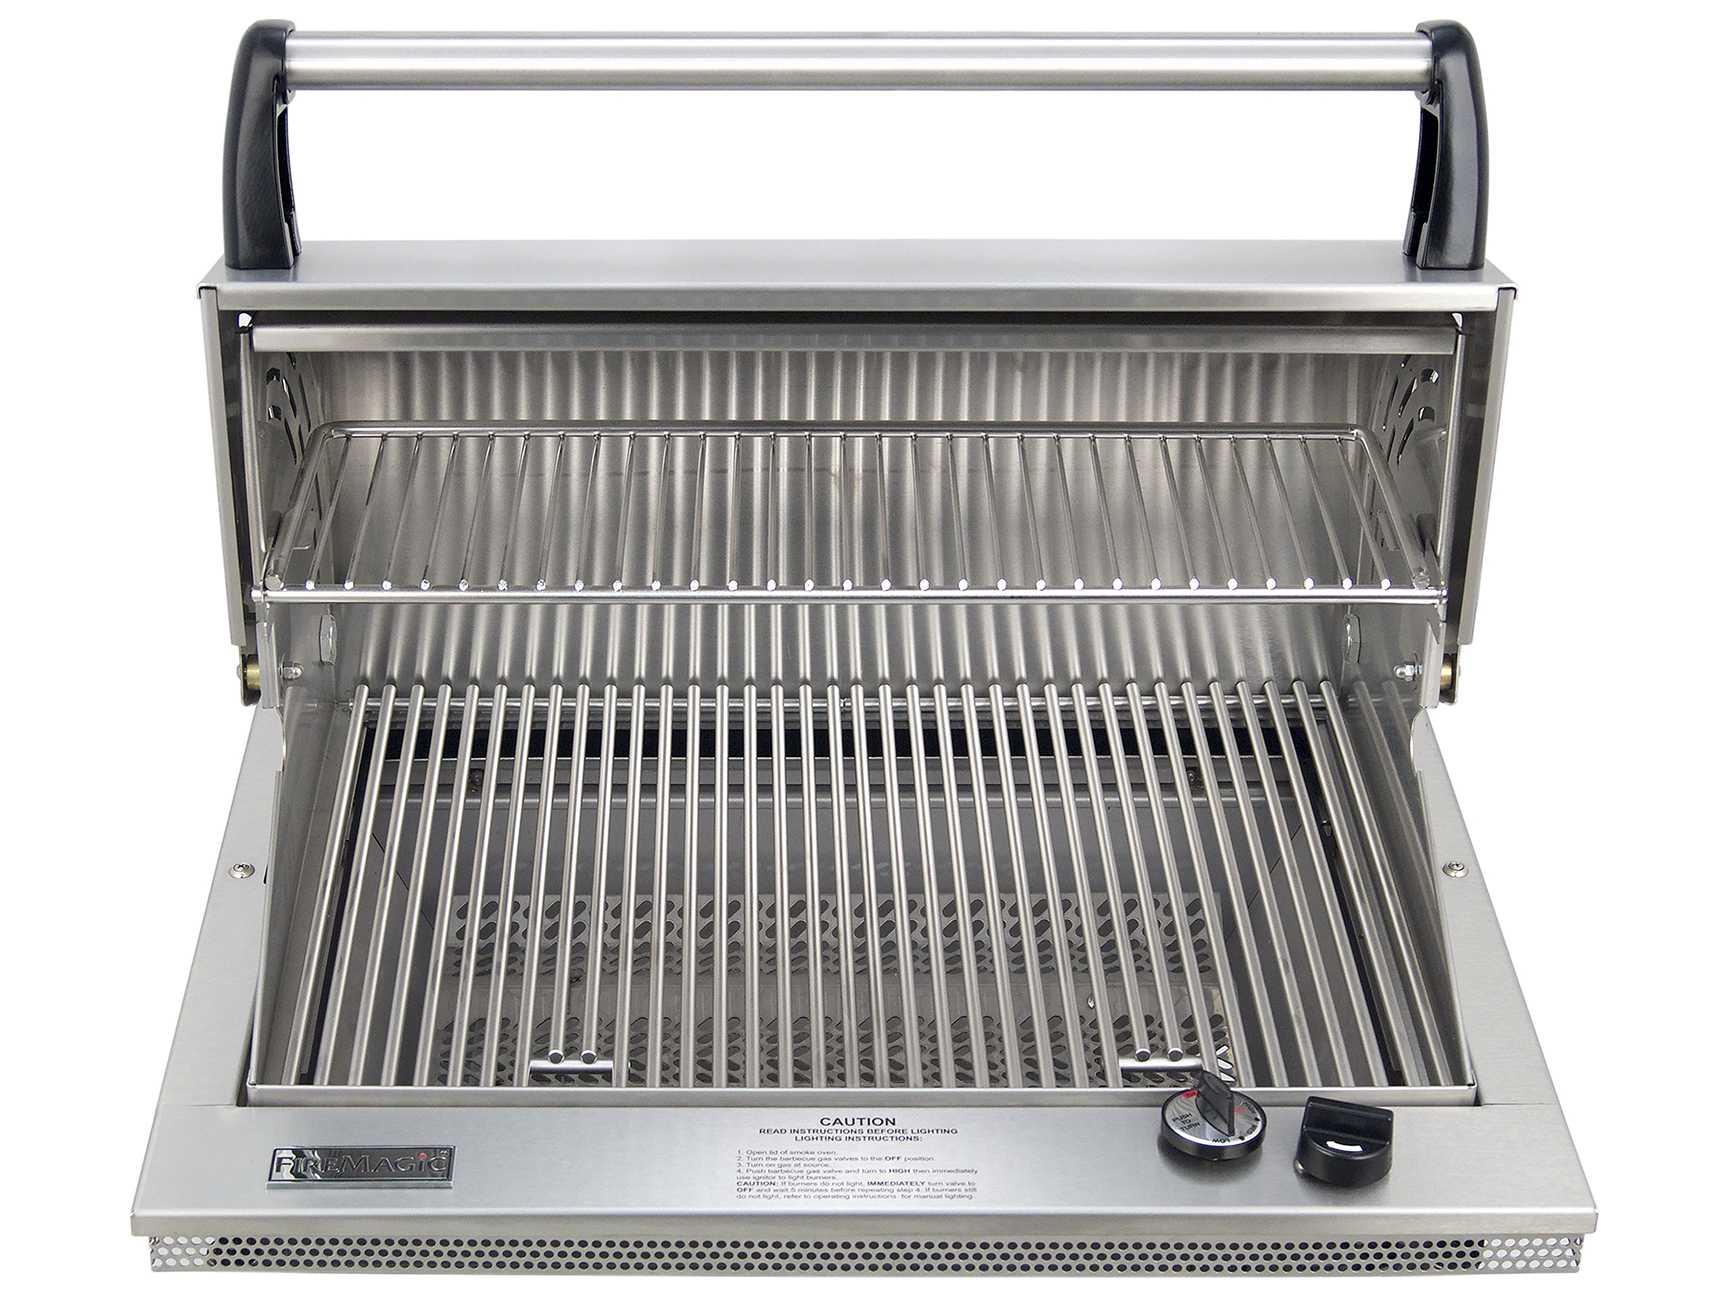 Countertop Gas Grill Outdoor : Home > BBQ Grills > Countertop Grills > + Shop All Fire Magic